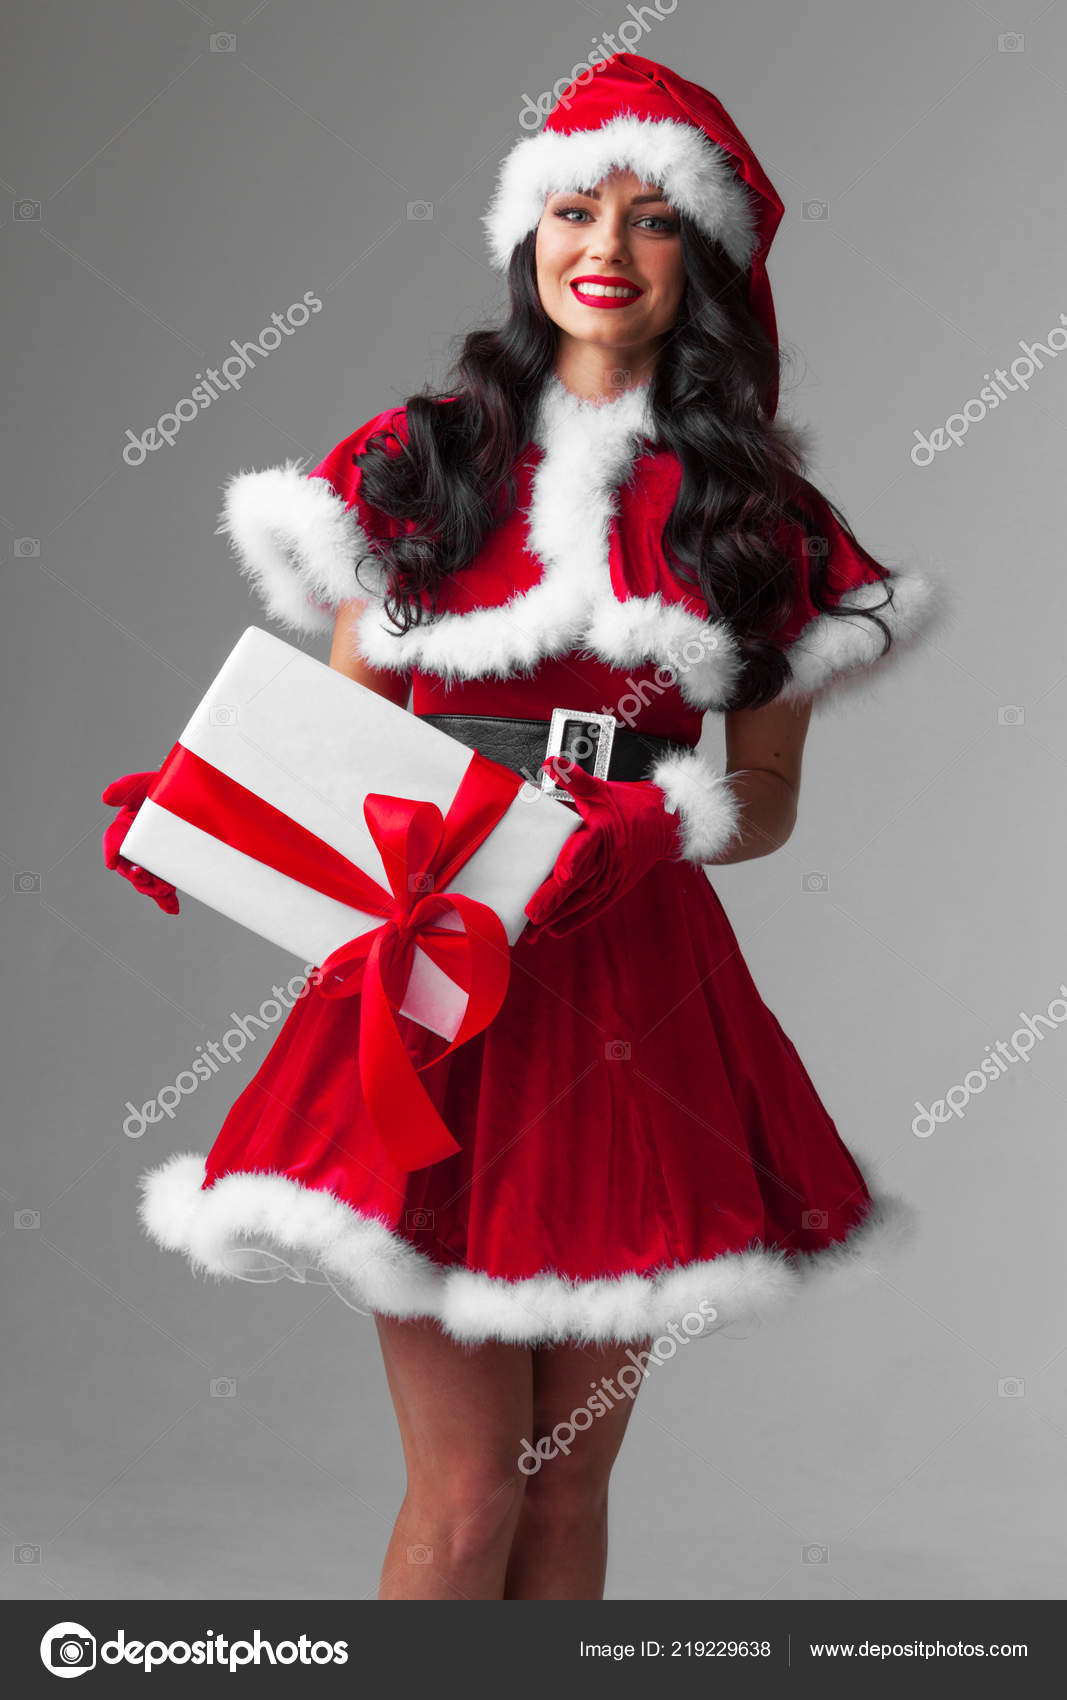 53b1c49db11 Woman Red Santa Claus Outfit Holding Christmas Gift Box — Stock ...